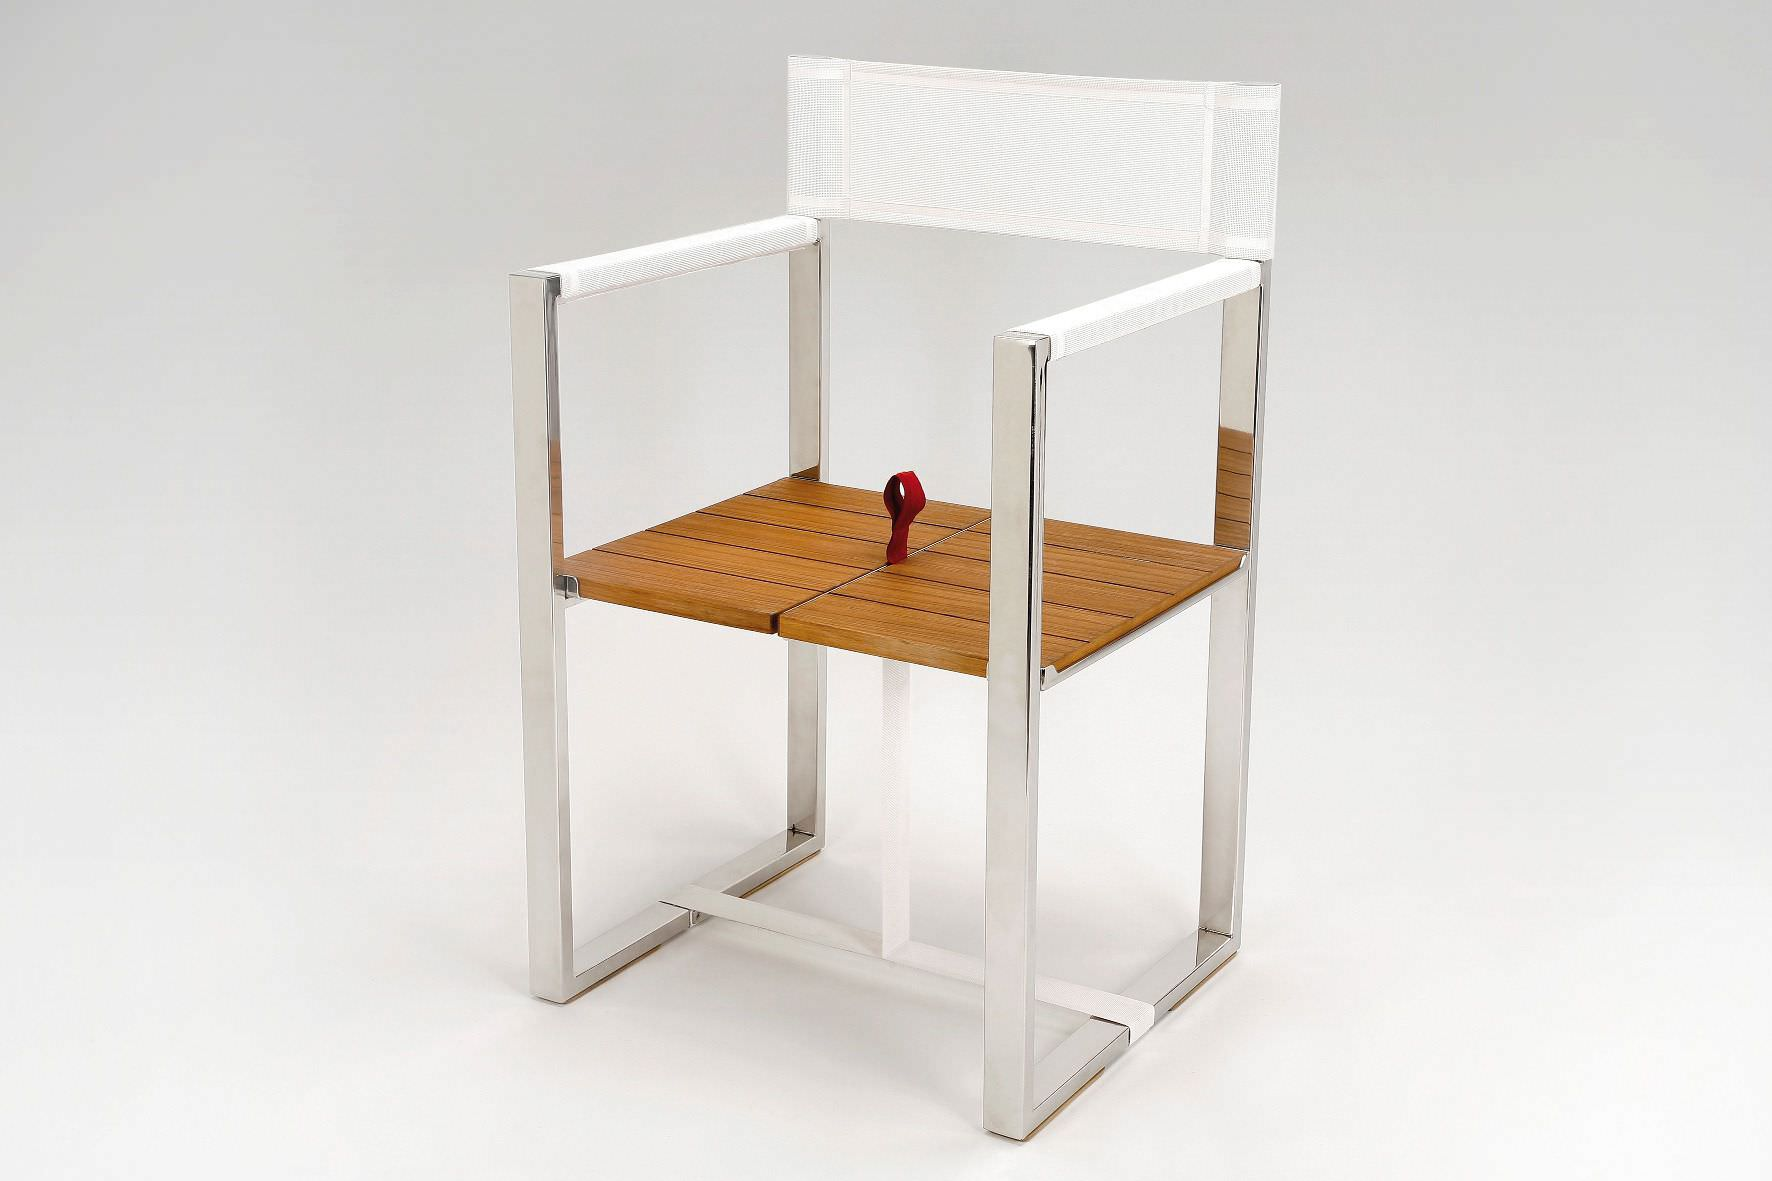 Chaise Contemporaine Pliante Avec Accoudoirs Luge